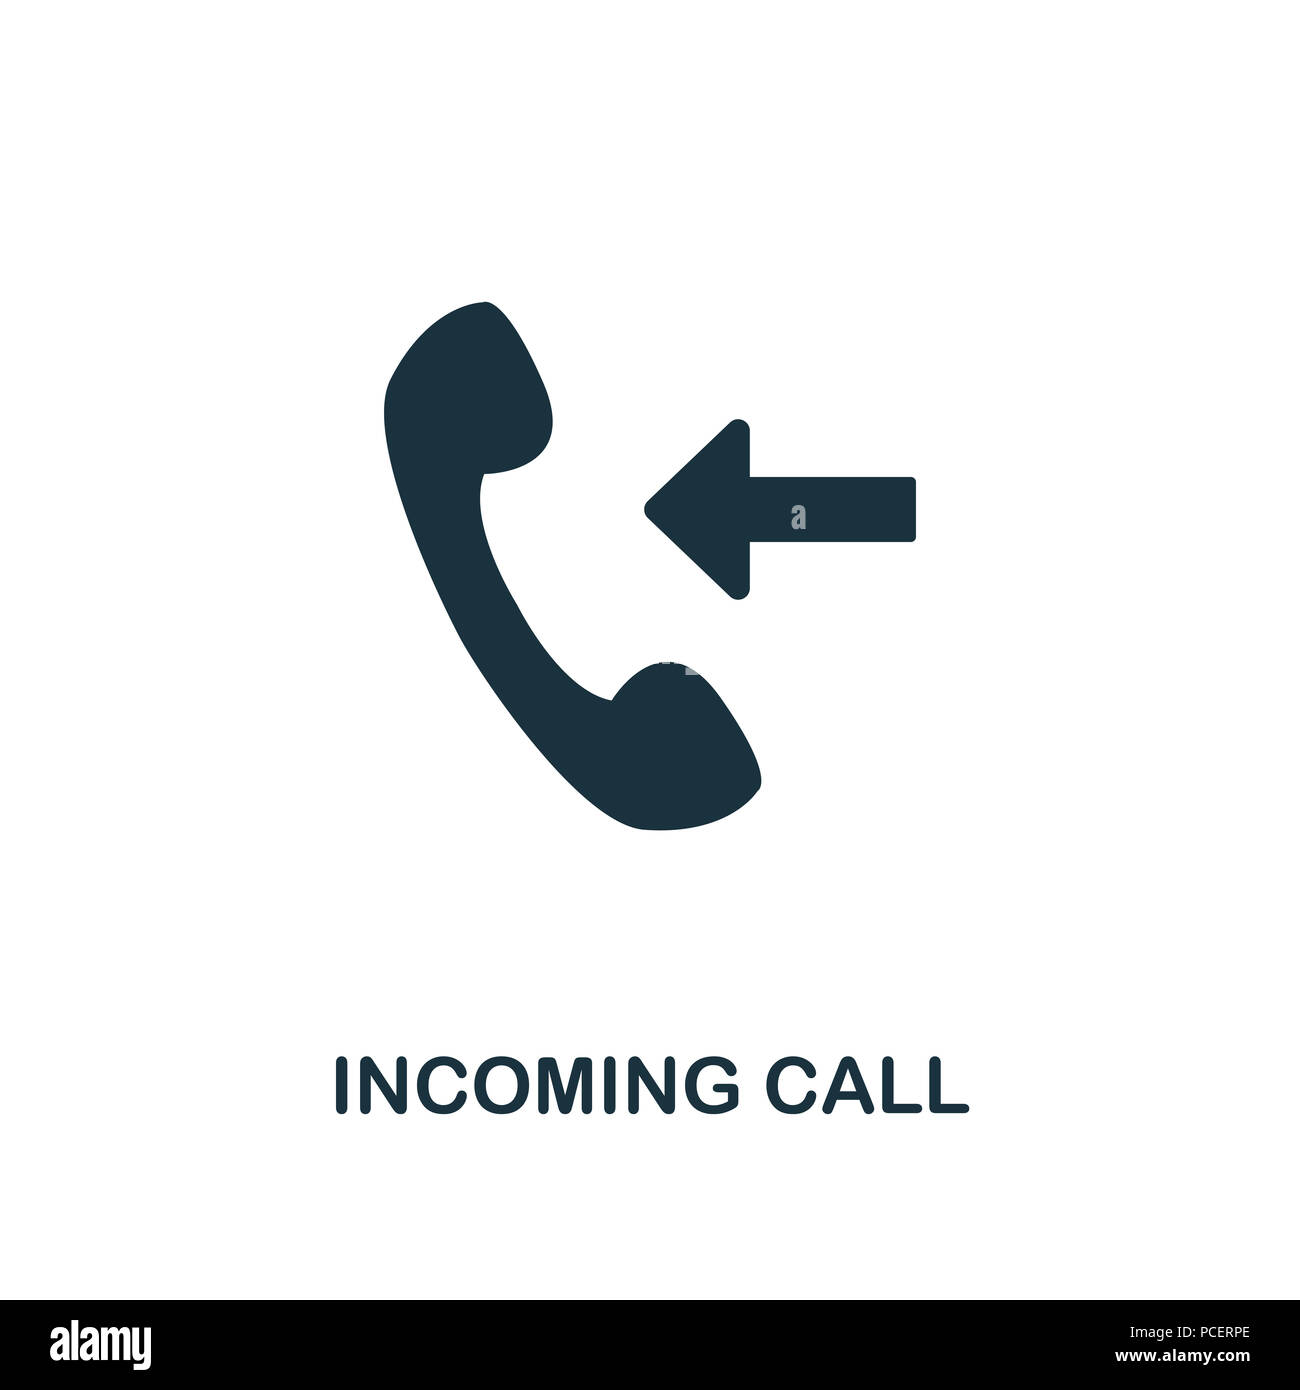 Incoming Call Stock Photos & Incoming Call Stock Images - Alamy